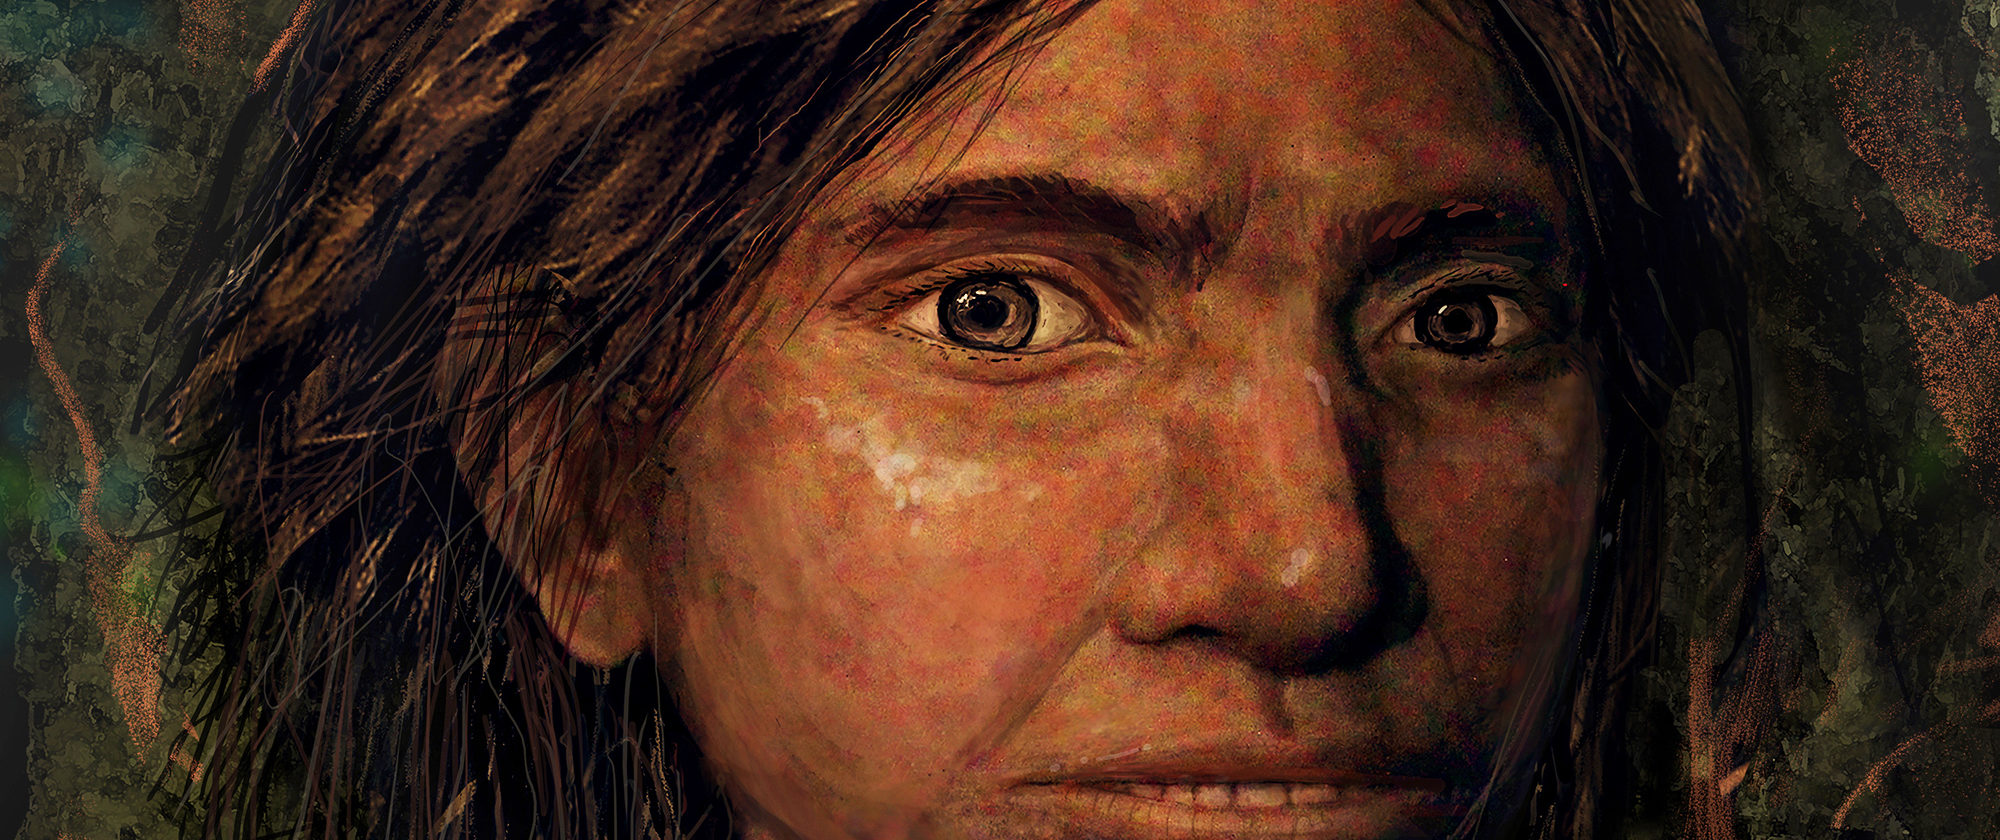 A portrait of a 80,000 year old Denisovan girl, recreated solely from molecular data. Art by Maayan visuals.